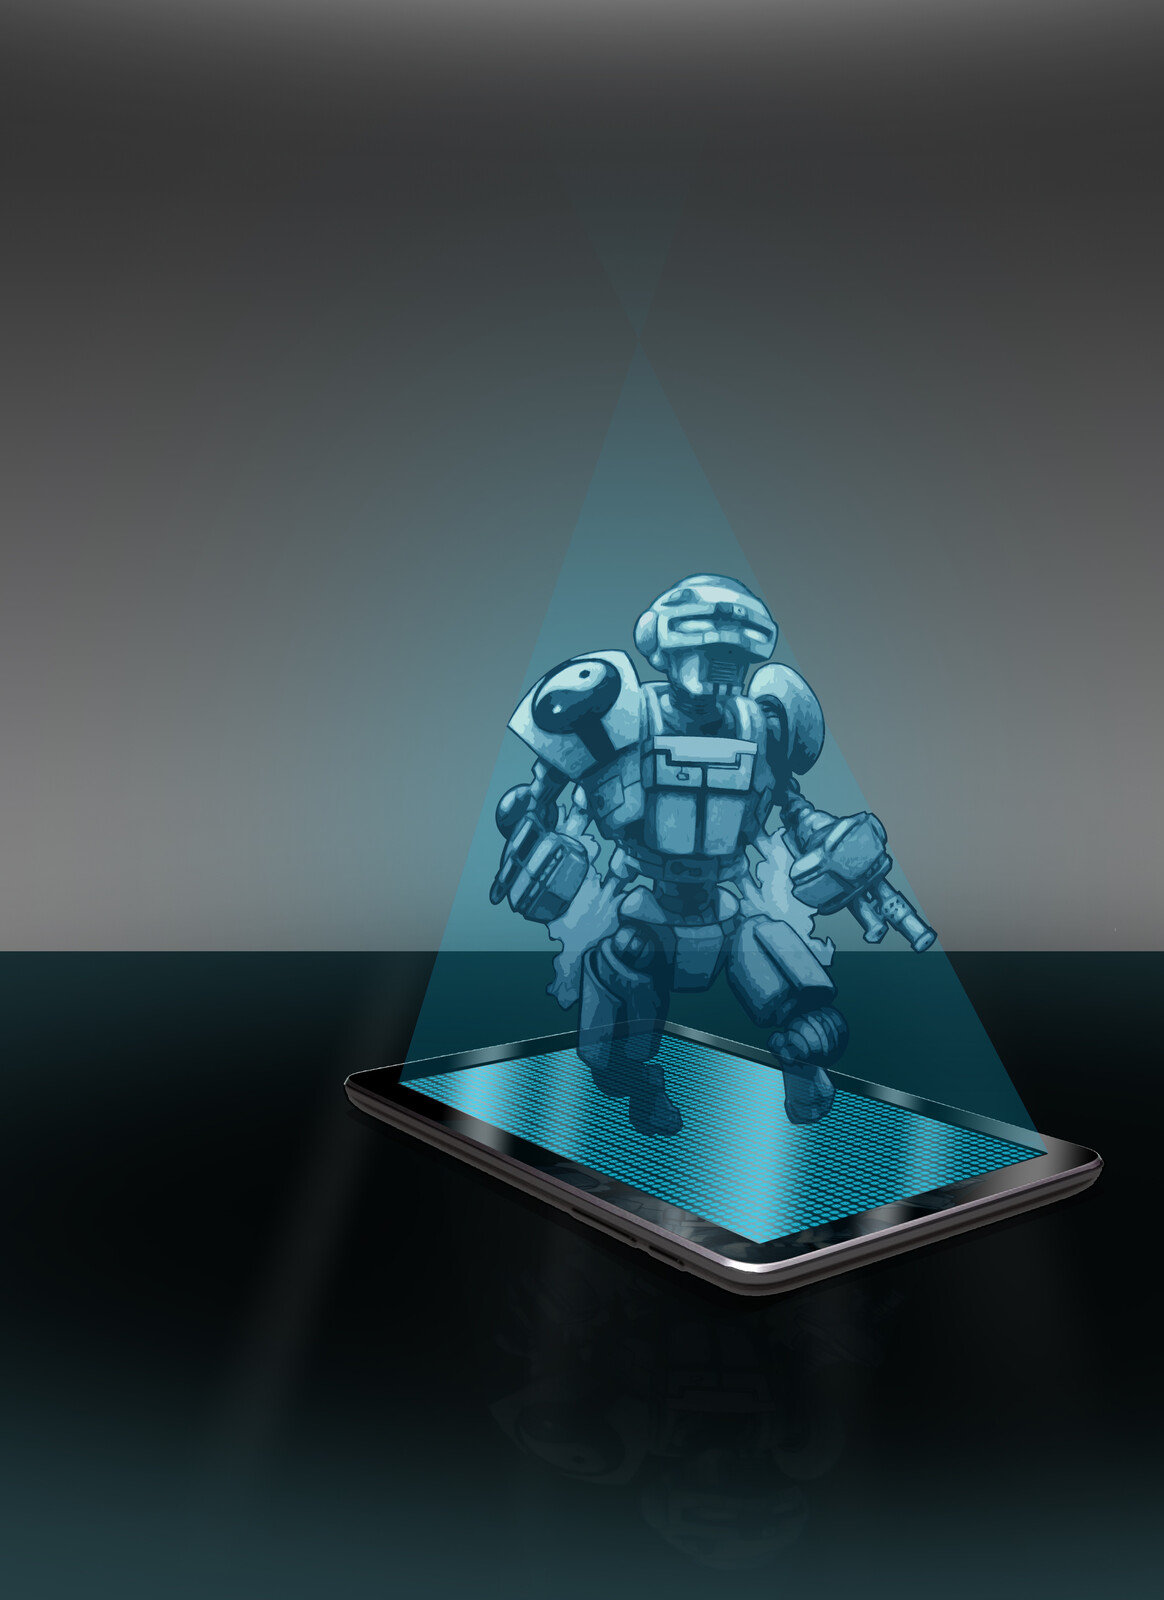 A project for school with my robot drawing as a hologram from a fictional futuristic phone